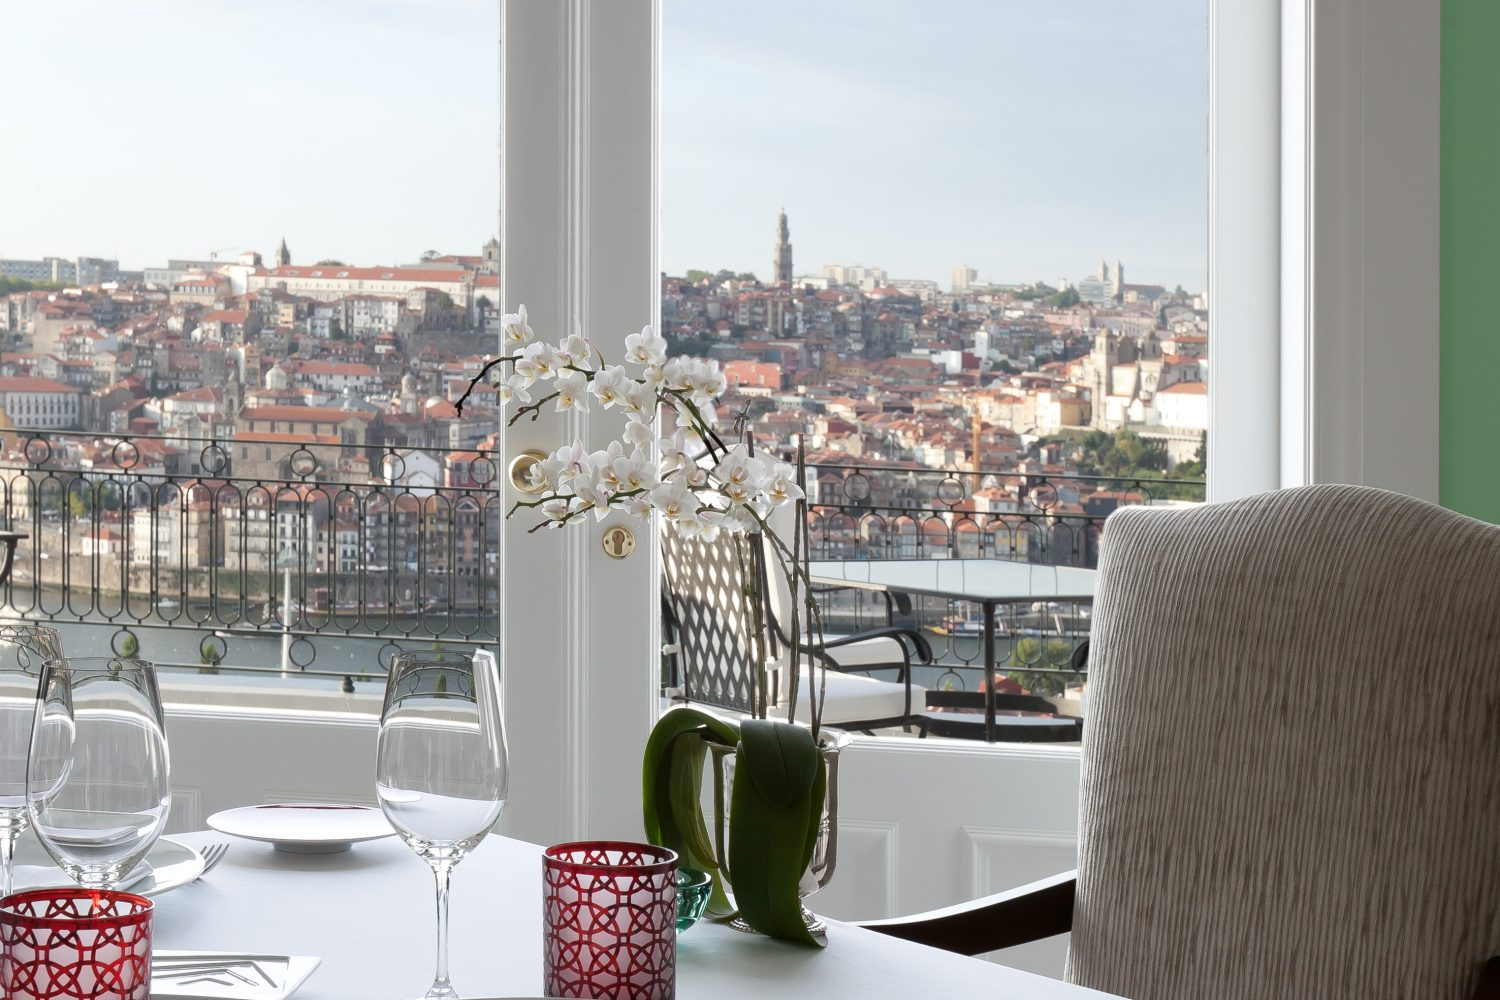 The Restaurant View at The Yeatman Relais & Chateaux